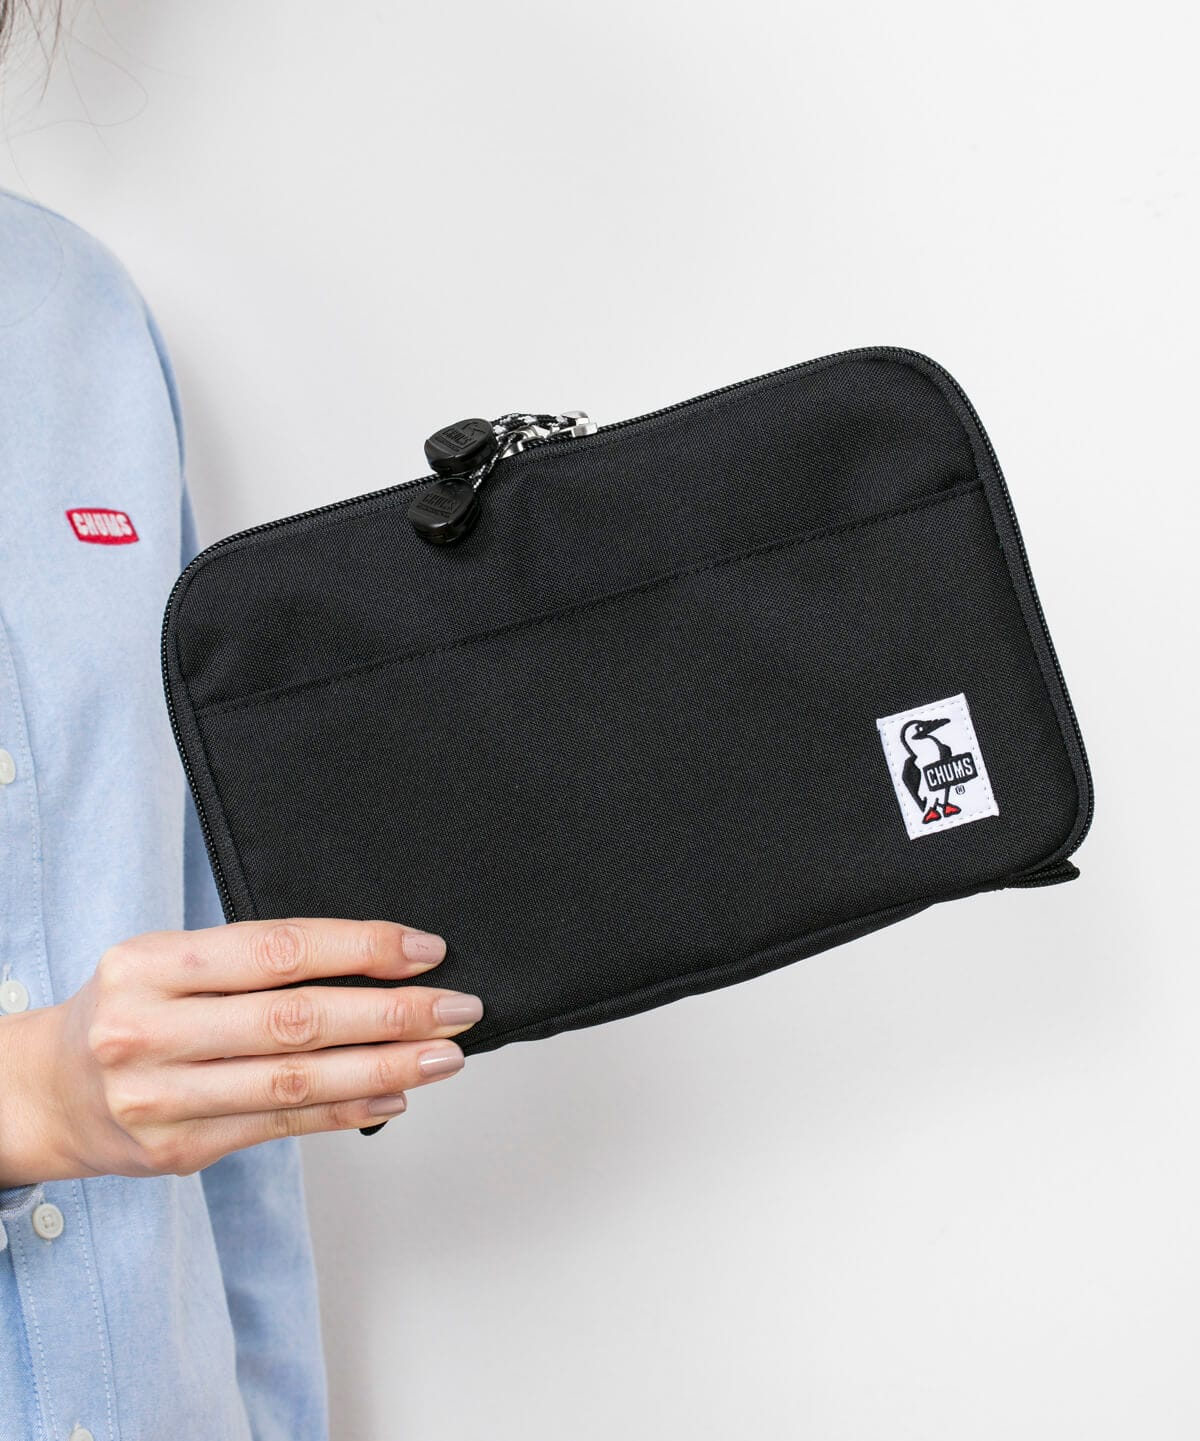 Eco Tidy Pouch(エコタイディポーチ(ポーチ/ペンケース))